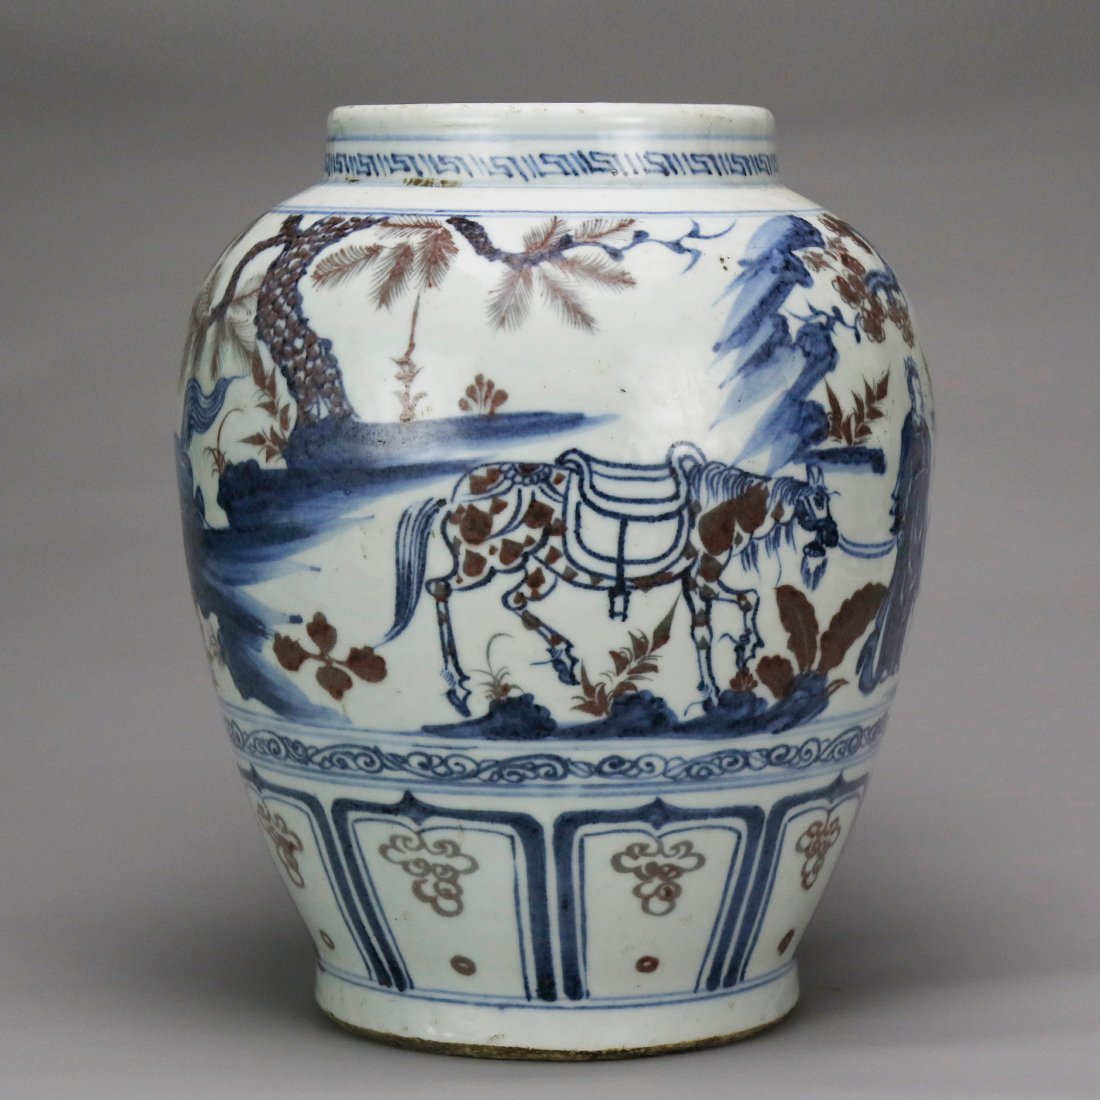 China 15 Century blue and white glazed red ceramic pot - 3